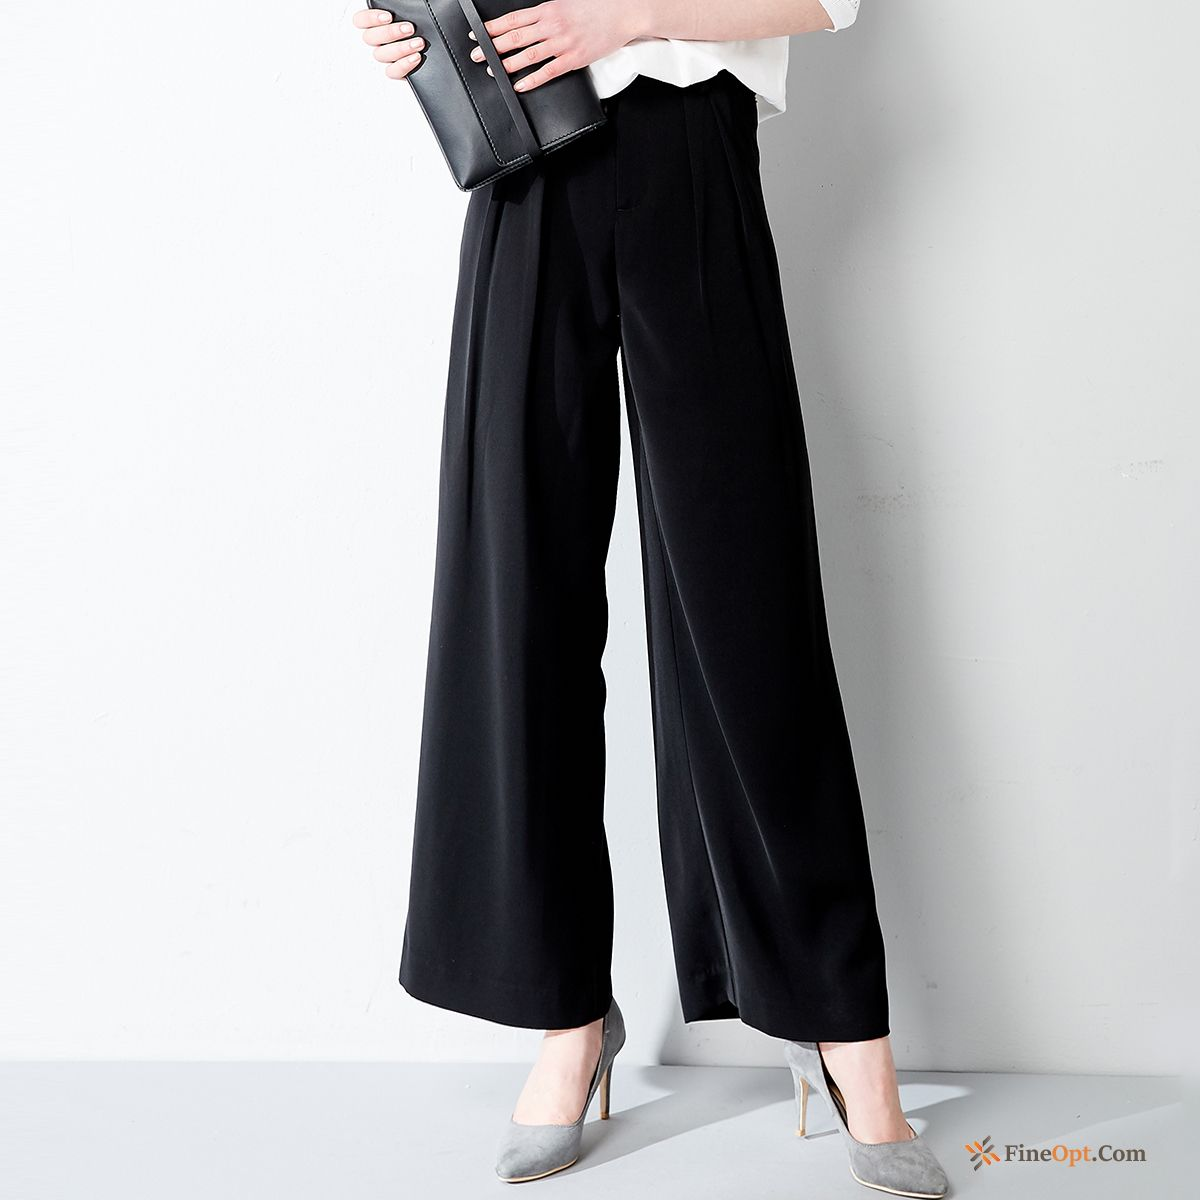 Cotton Leisure Trousers Loose Pants New High Waist Pants